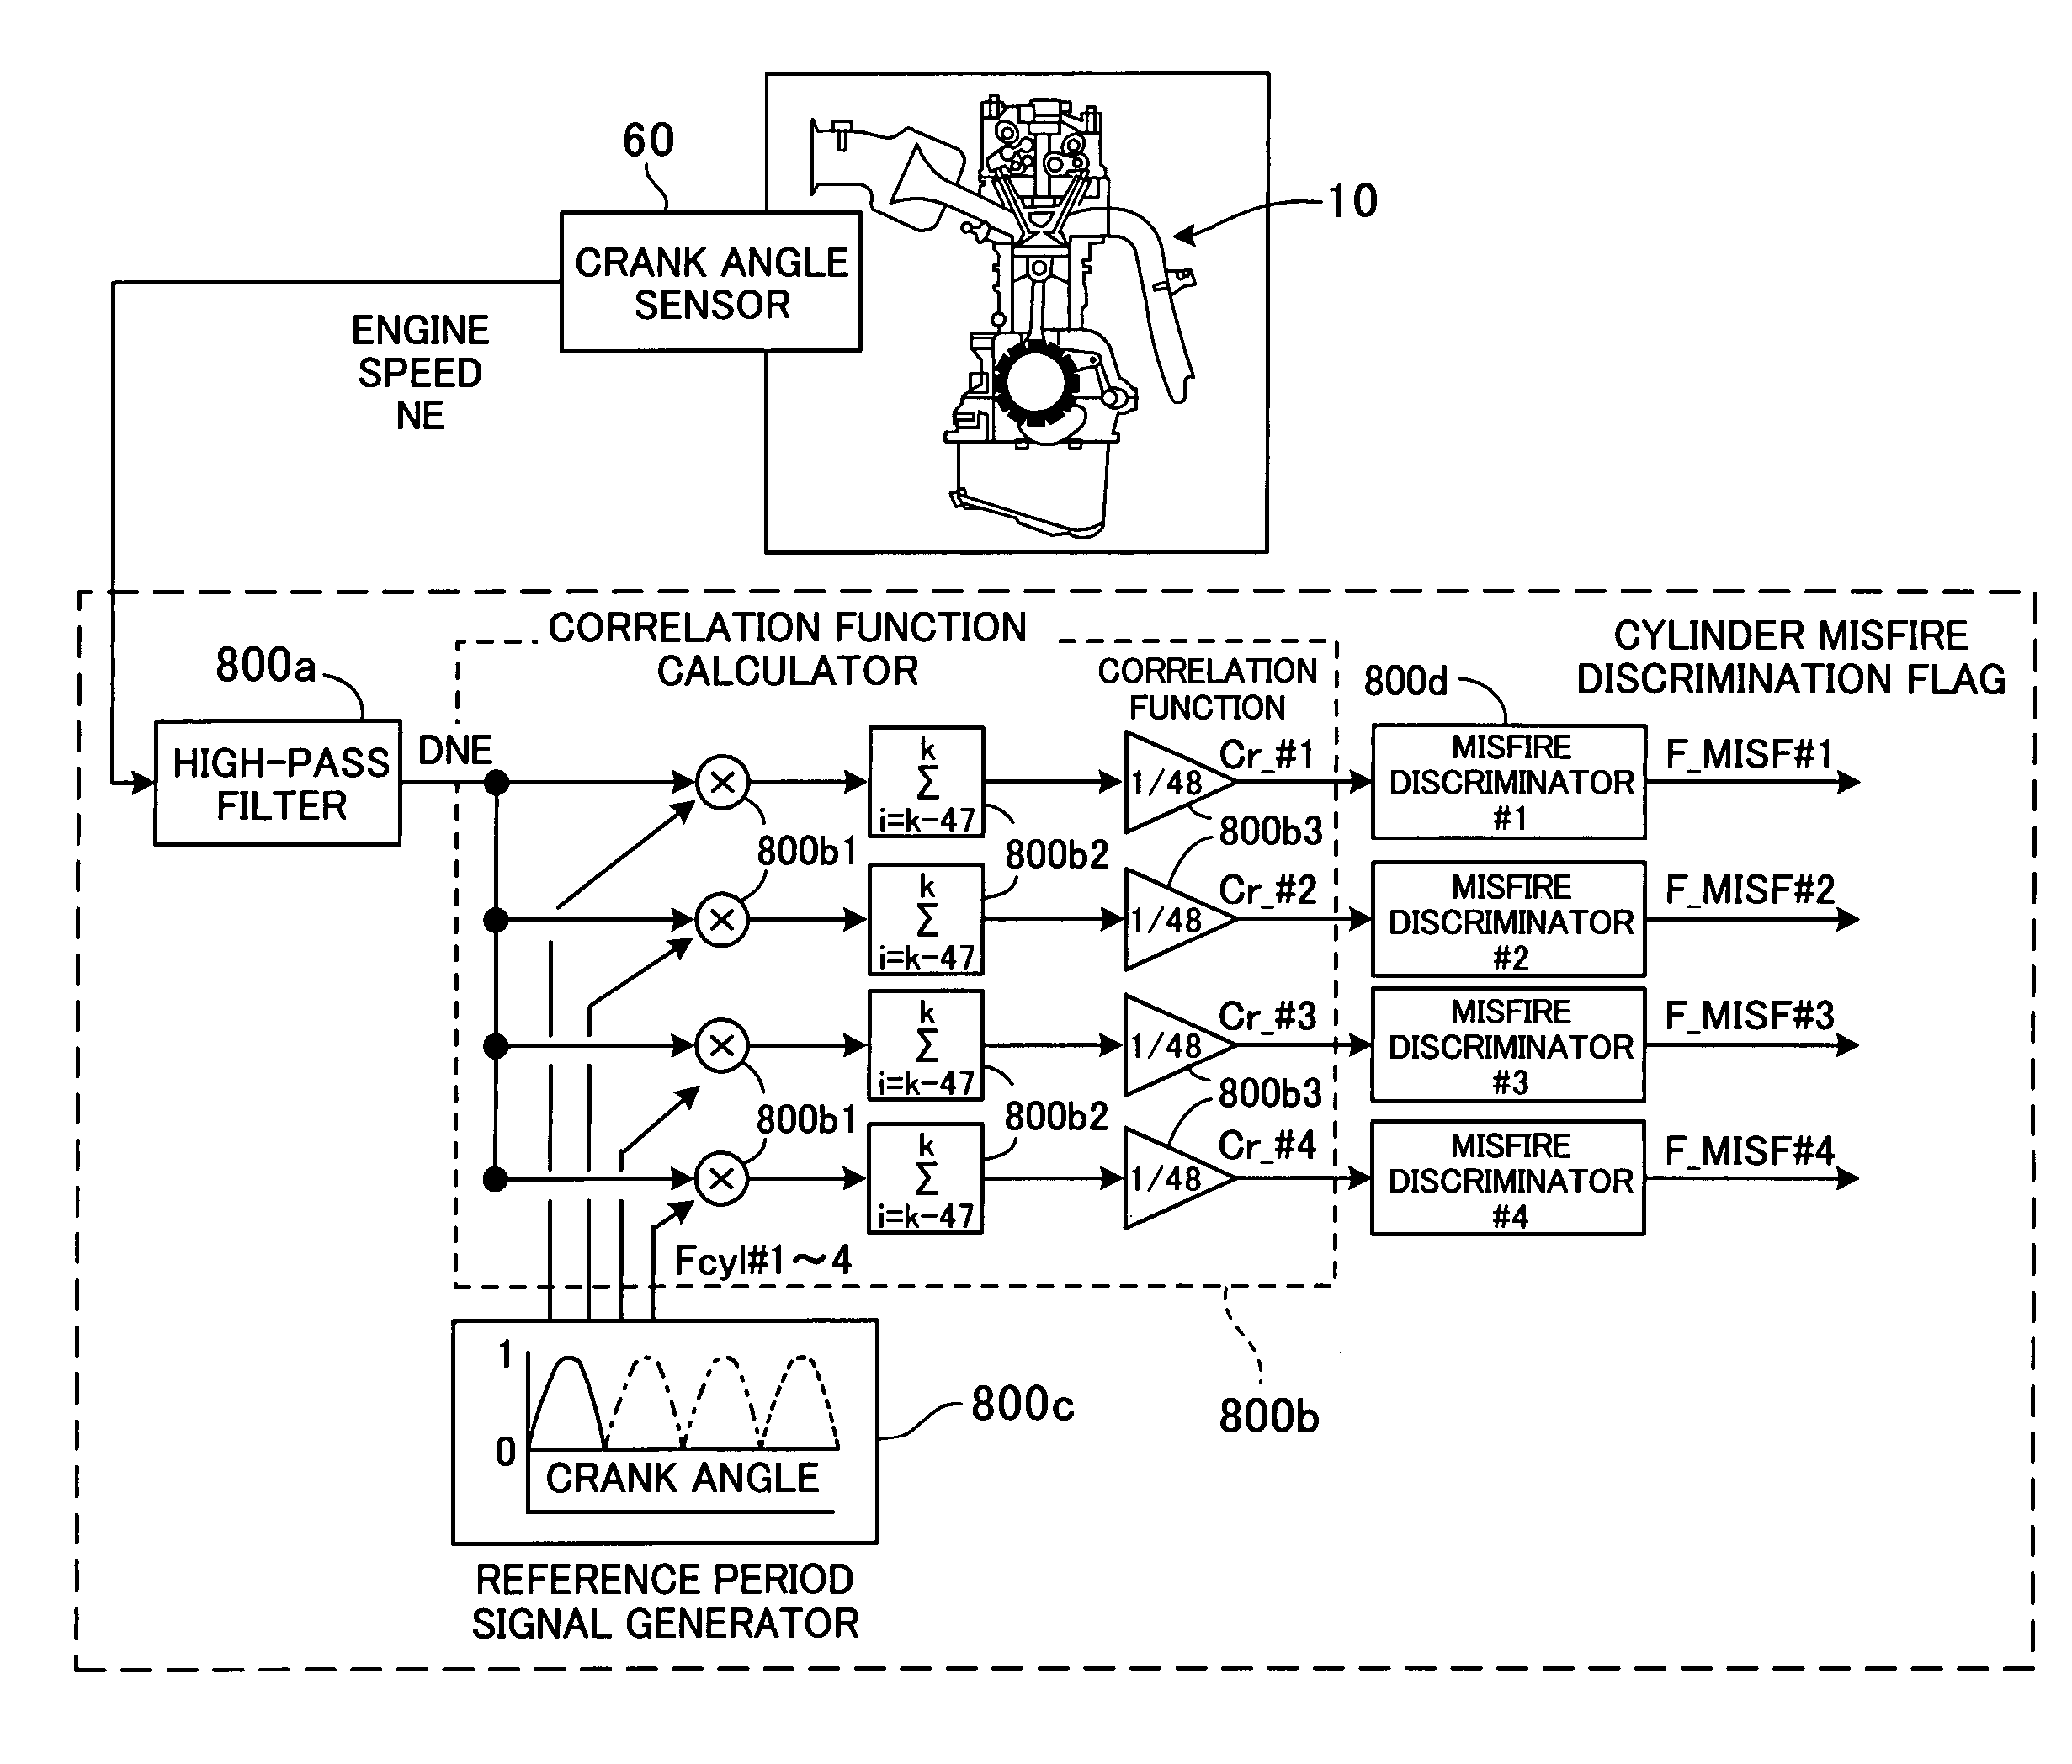 Patent US7158875 - Misfire detection system for internal combustion